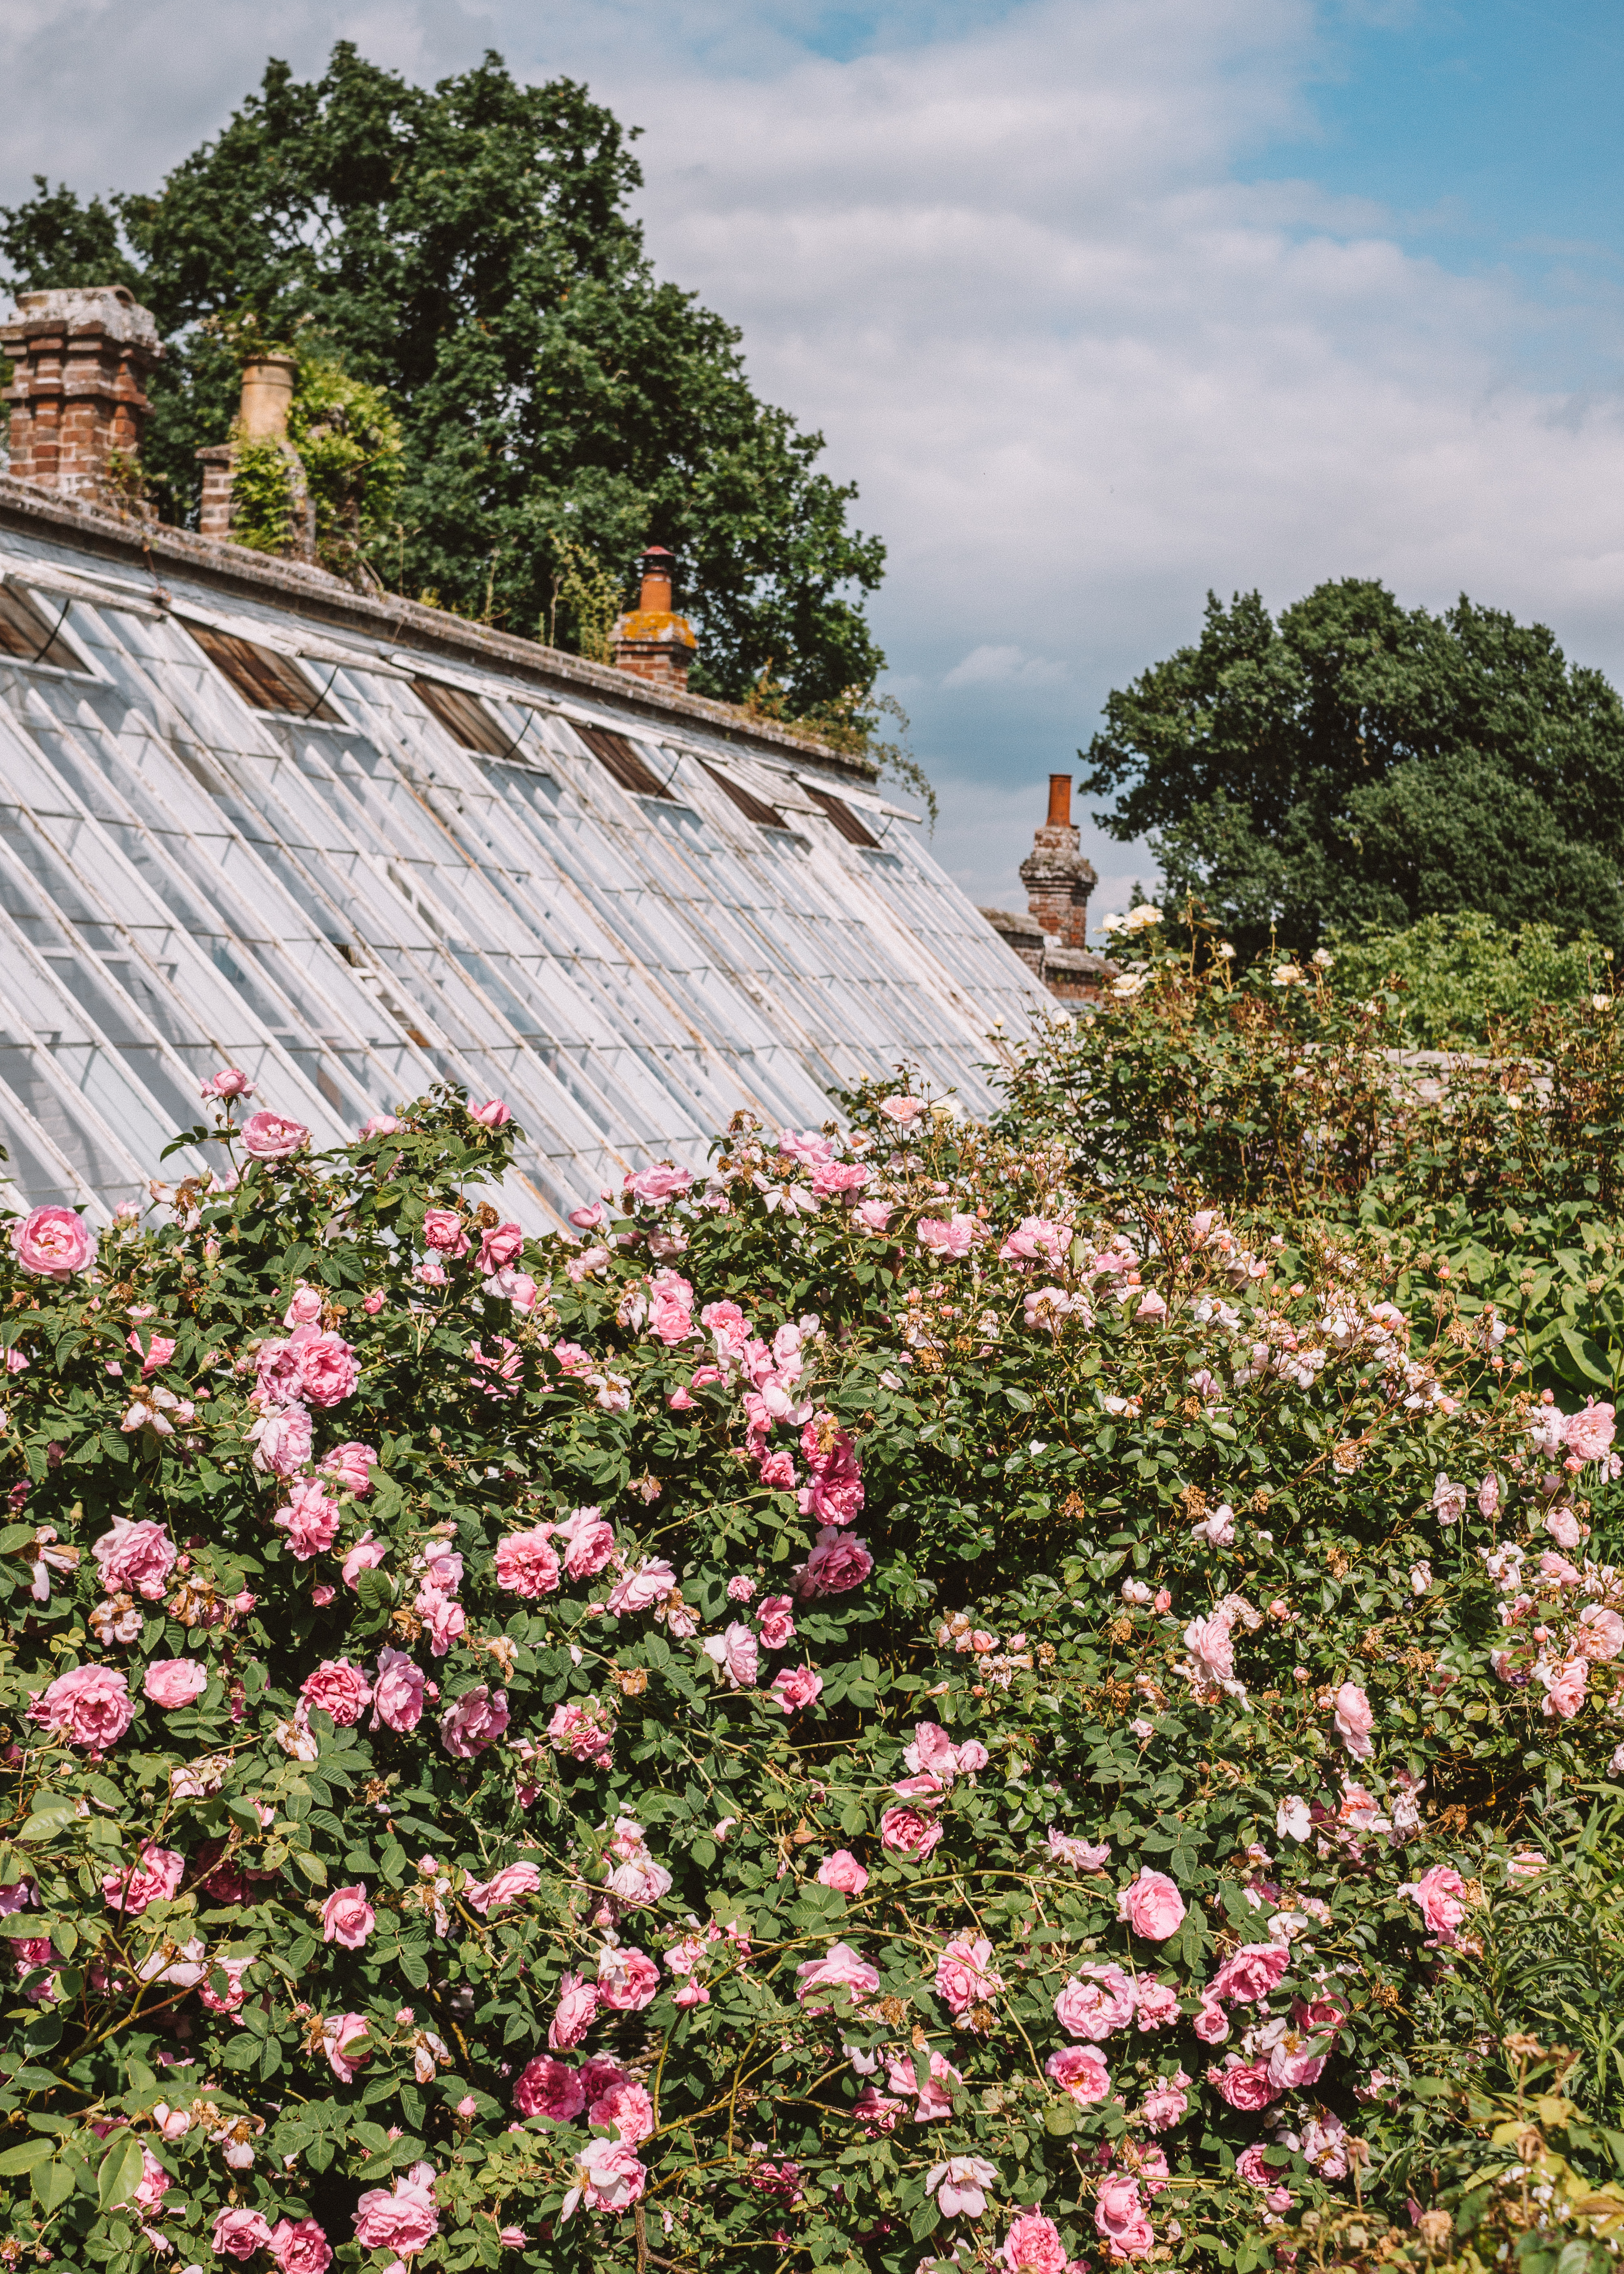 The Walled Garden at Scotney Castle, Kent